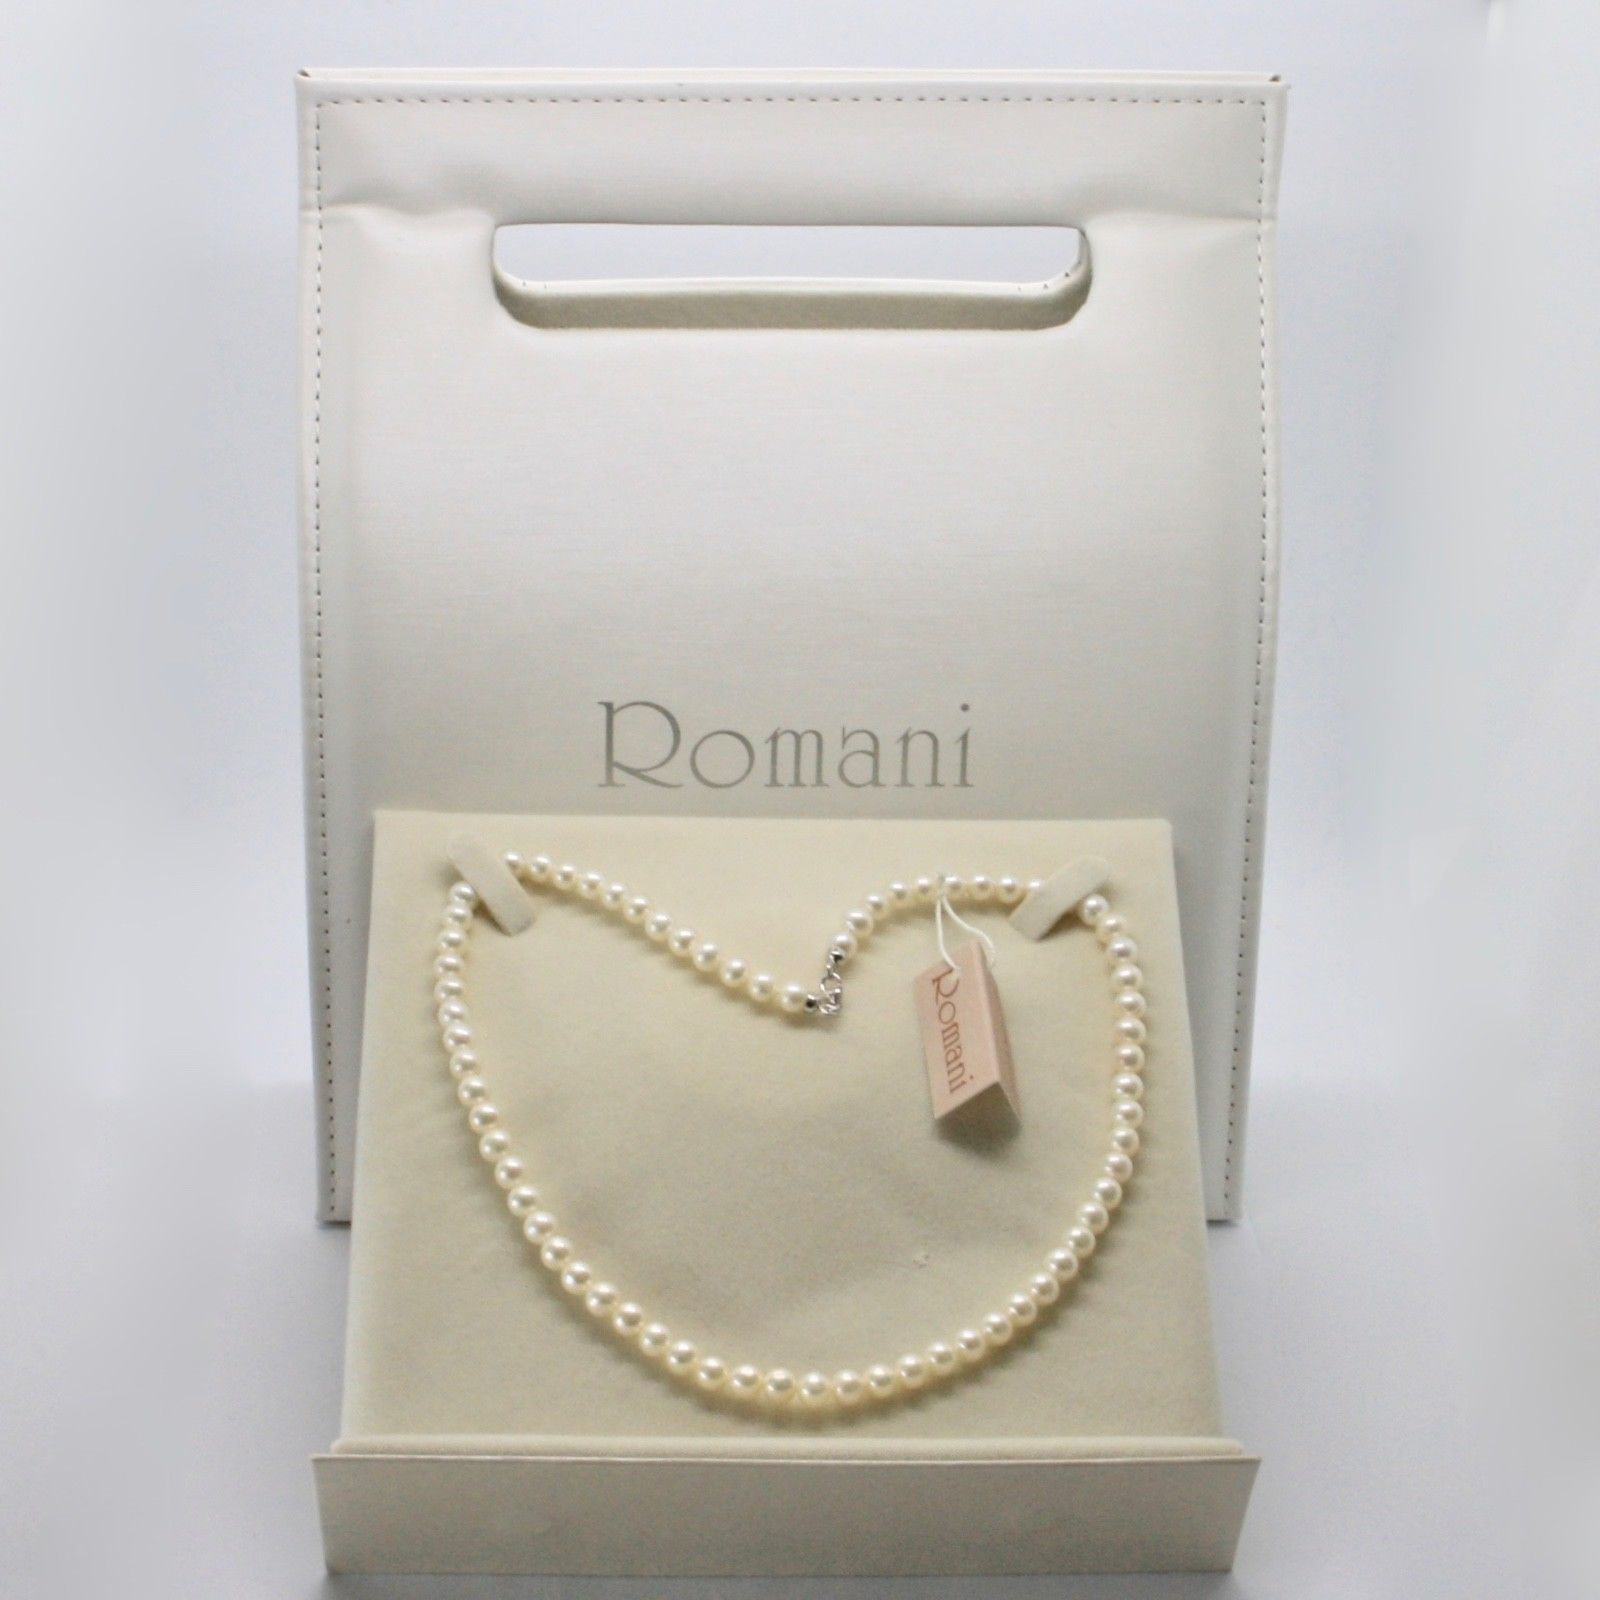 NECKLACE WHITE GOLD 18KT AND SILVER 925 WITH PEARLS 5.5 6 MM BEAUTIFUL BOX